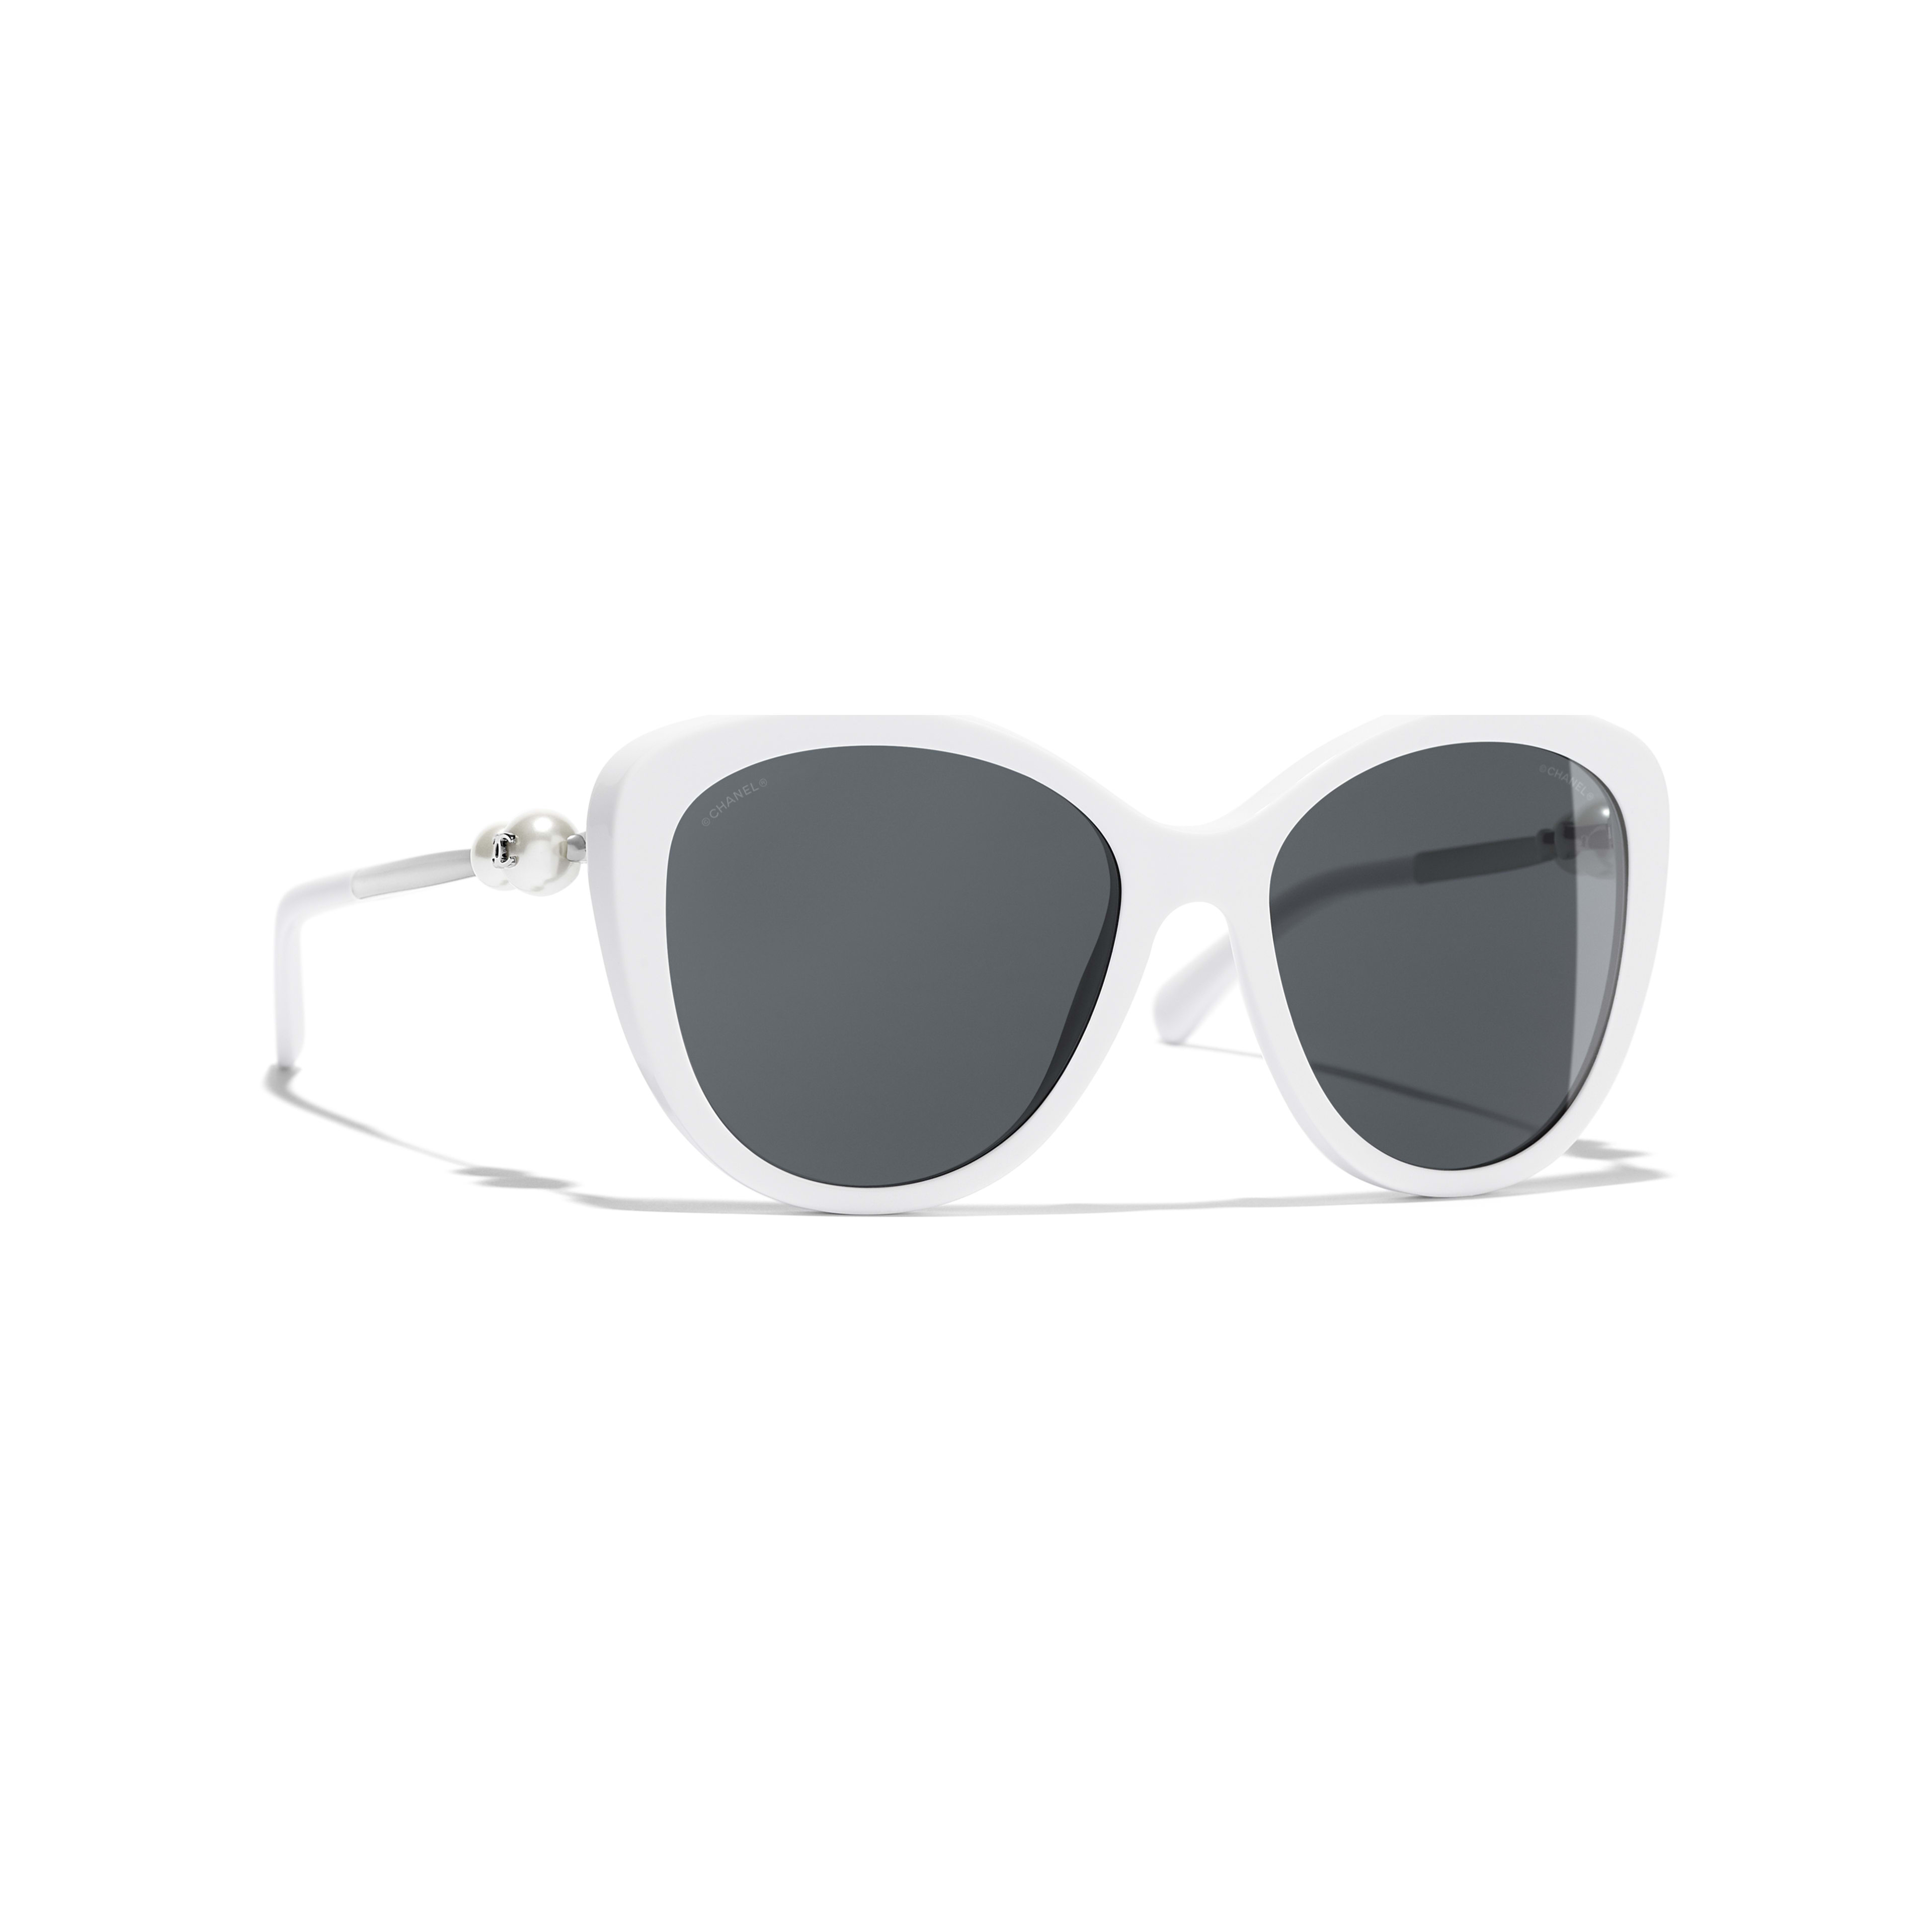 cheapest price no sale tax new authentic Butterfly Sunglasses, Acetate & Imitation Pearls, White | CHANEL